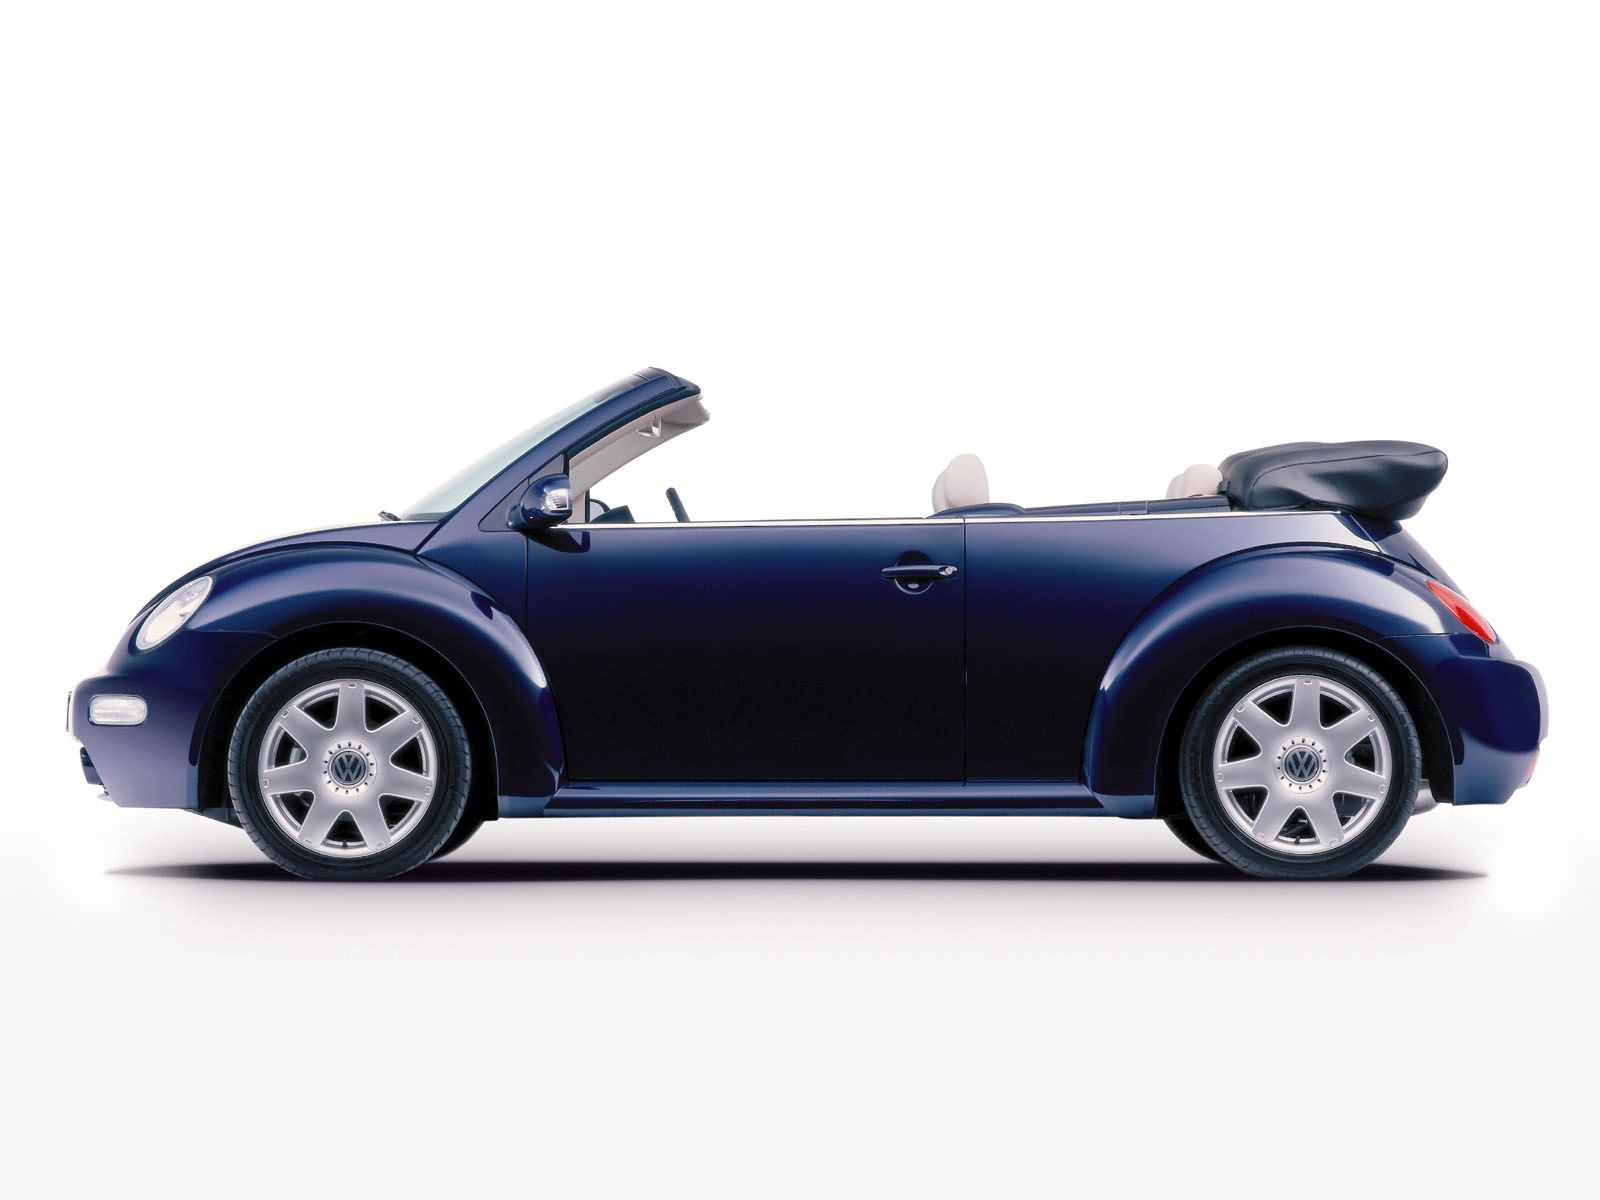 volkswagen new beetle cabriolet picture 17931 volkswagen photo gallery. Black Bedroom Furniture Sets. Home Design Ideas